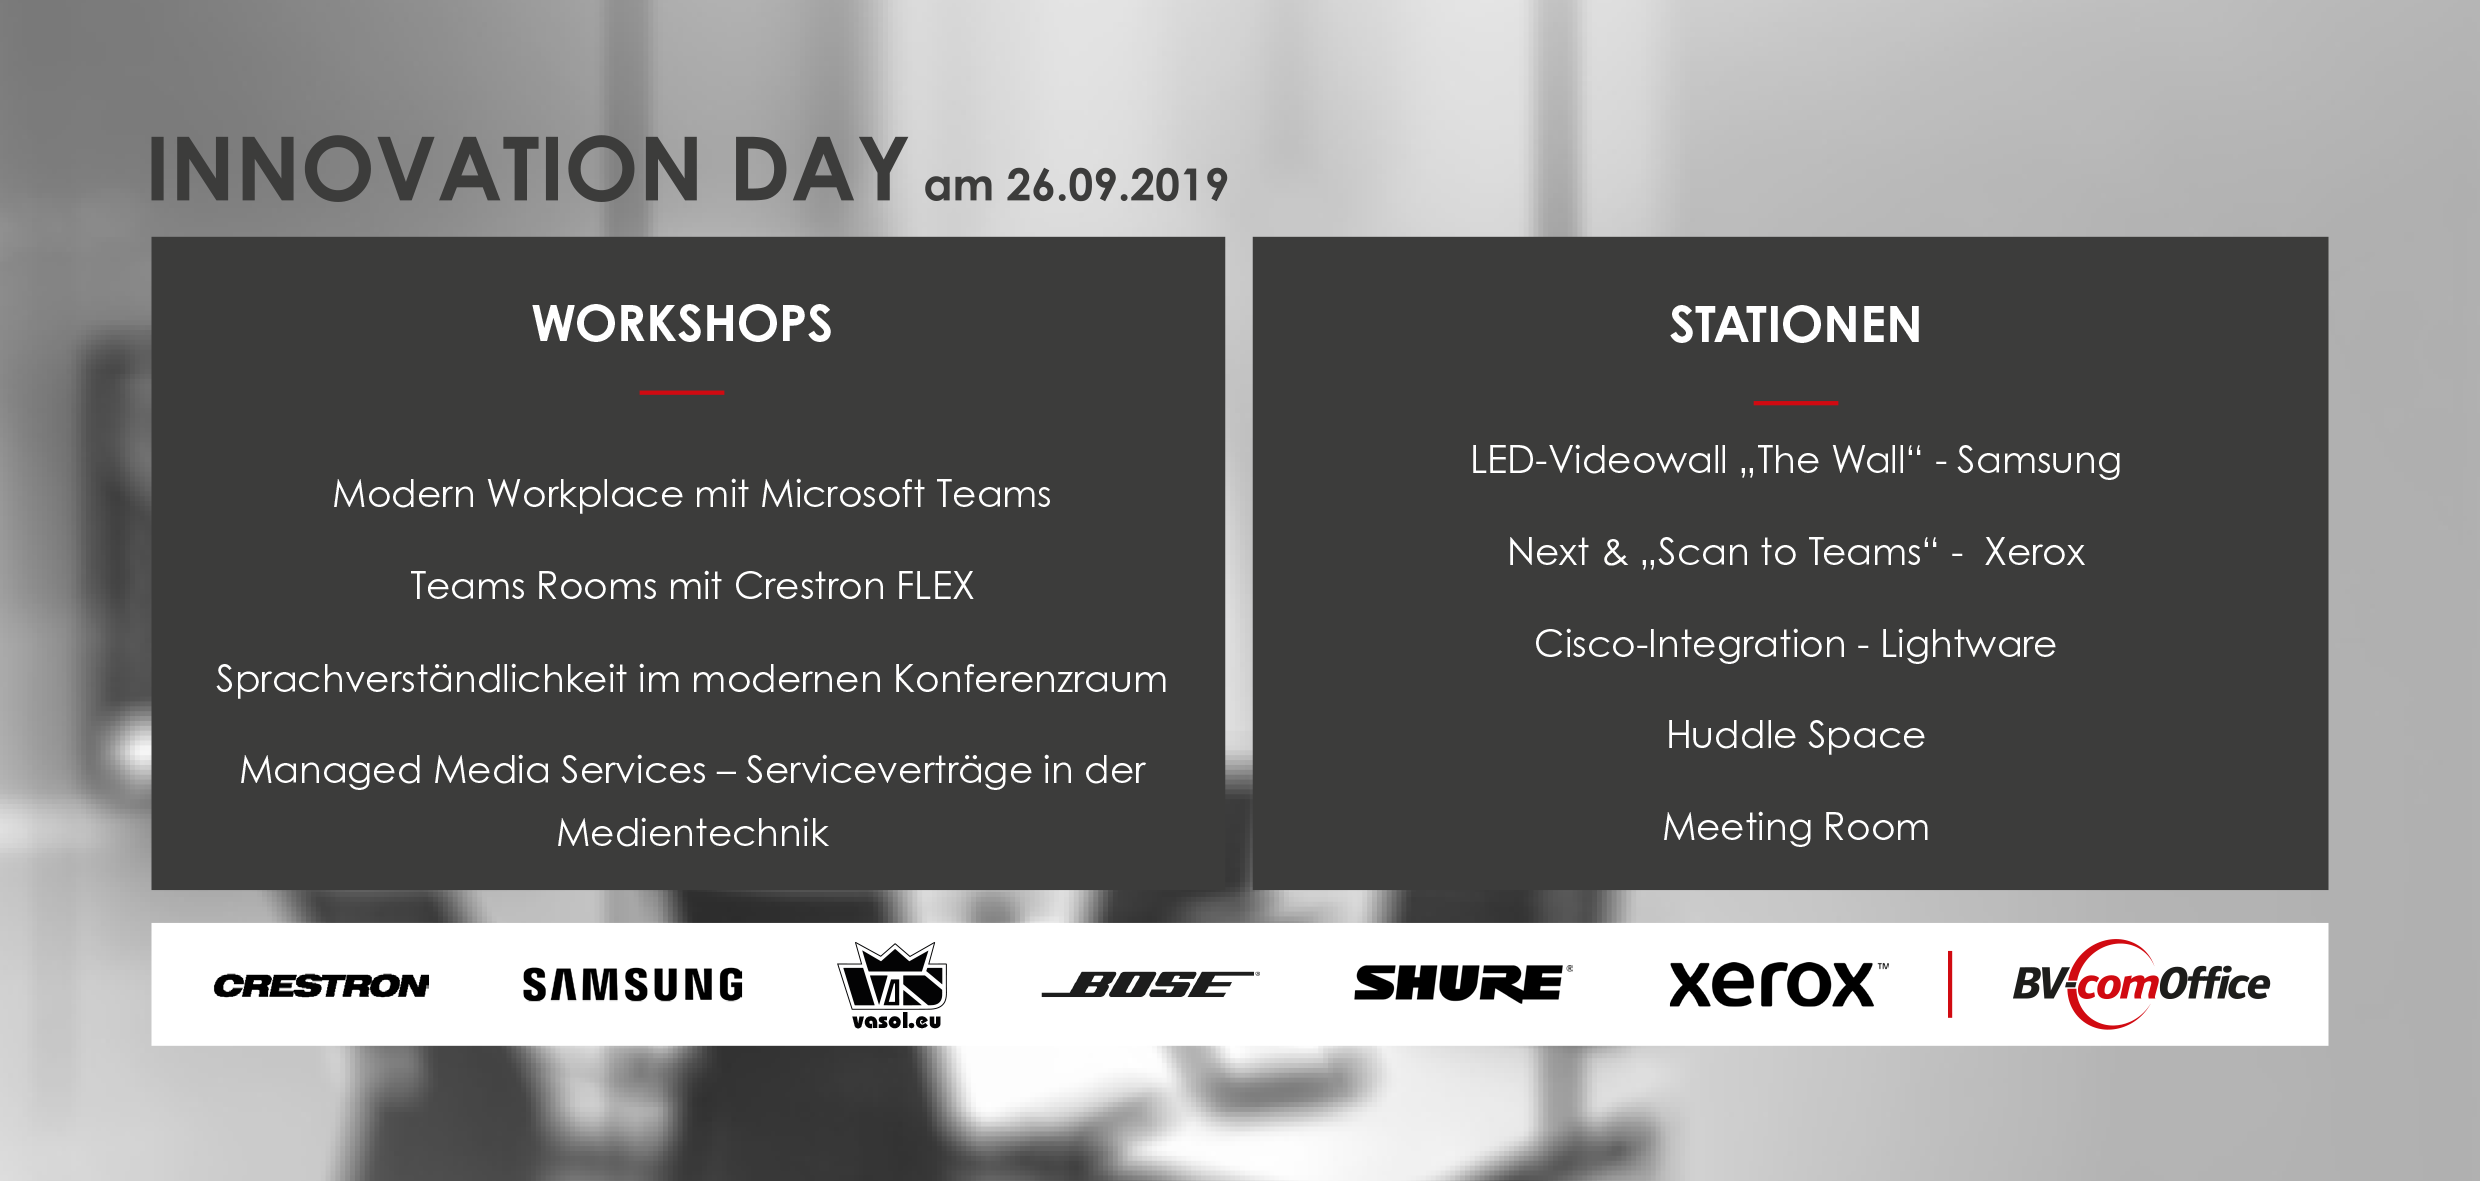 Innovation Day Agenda